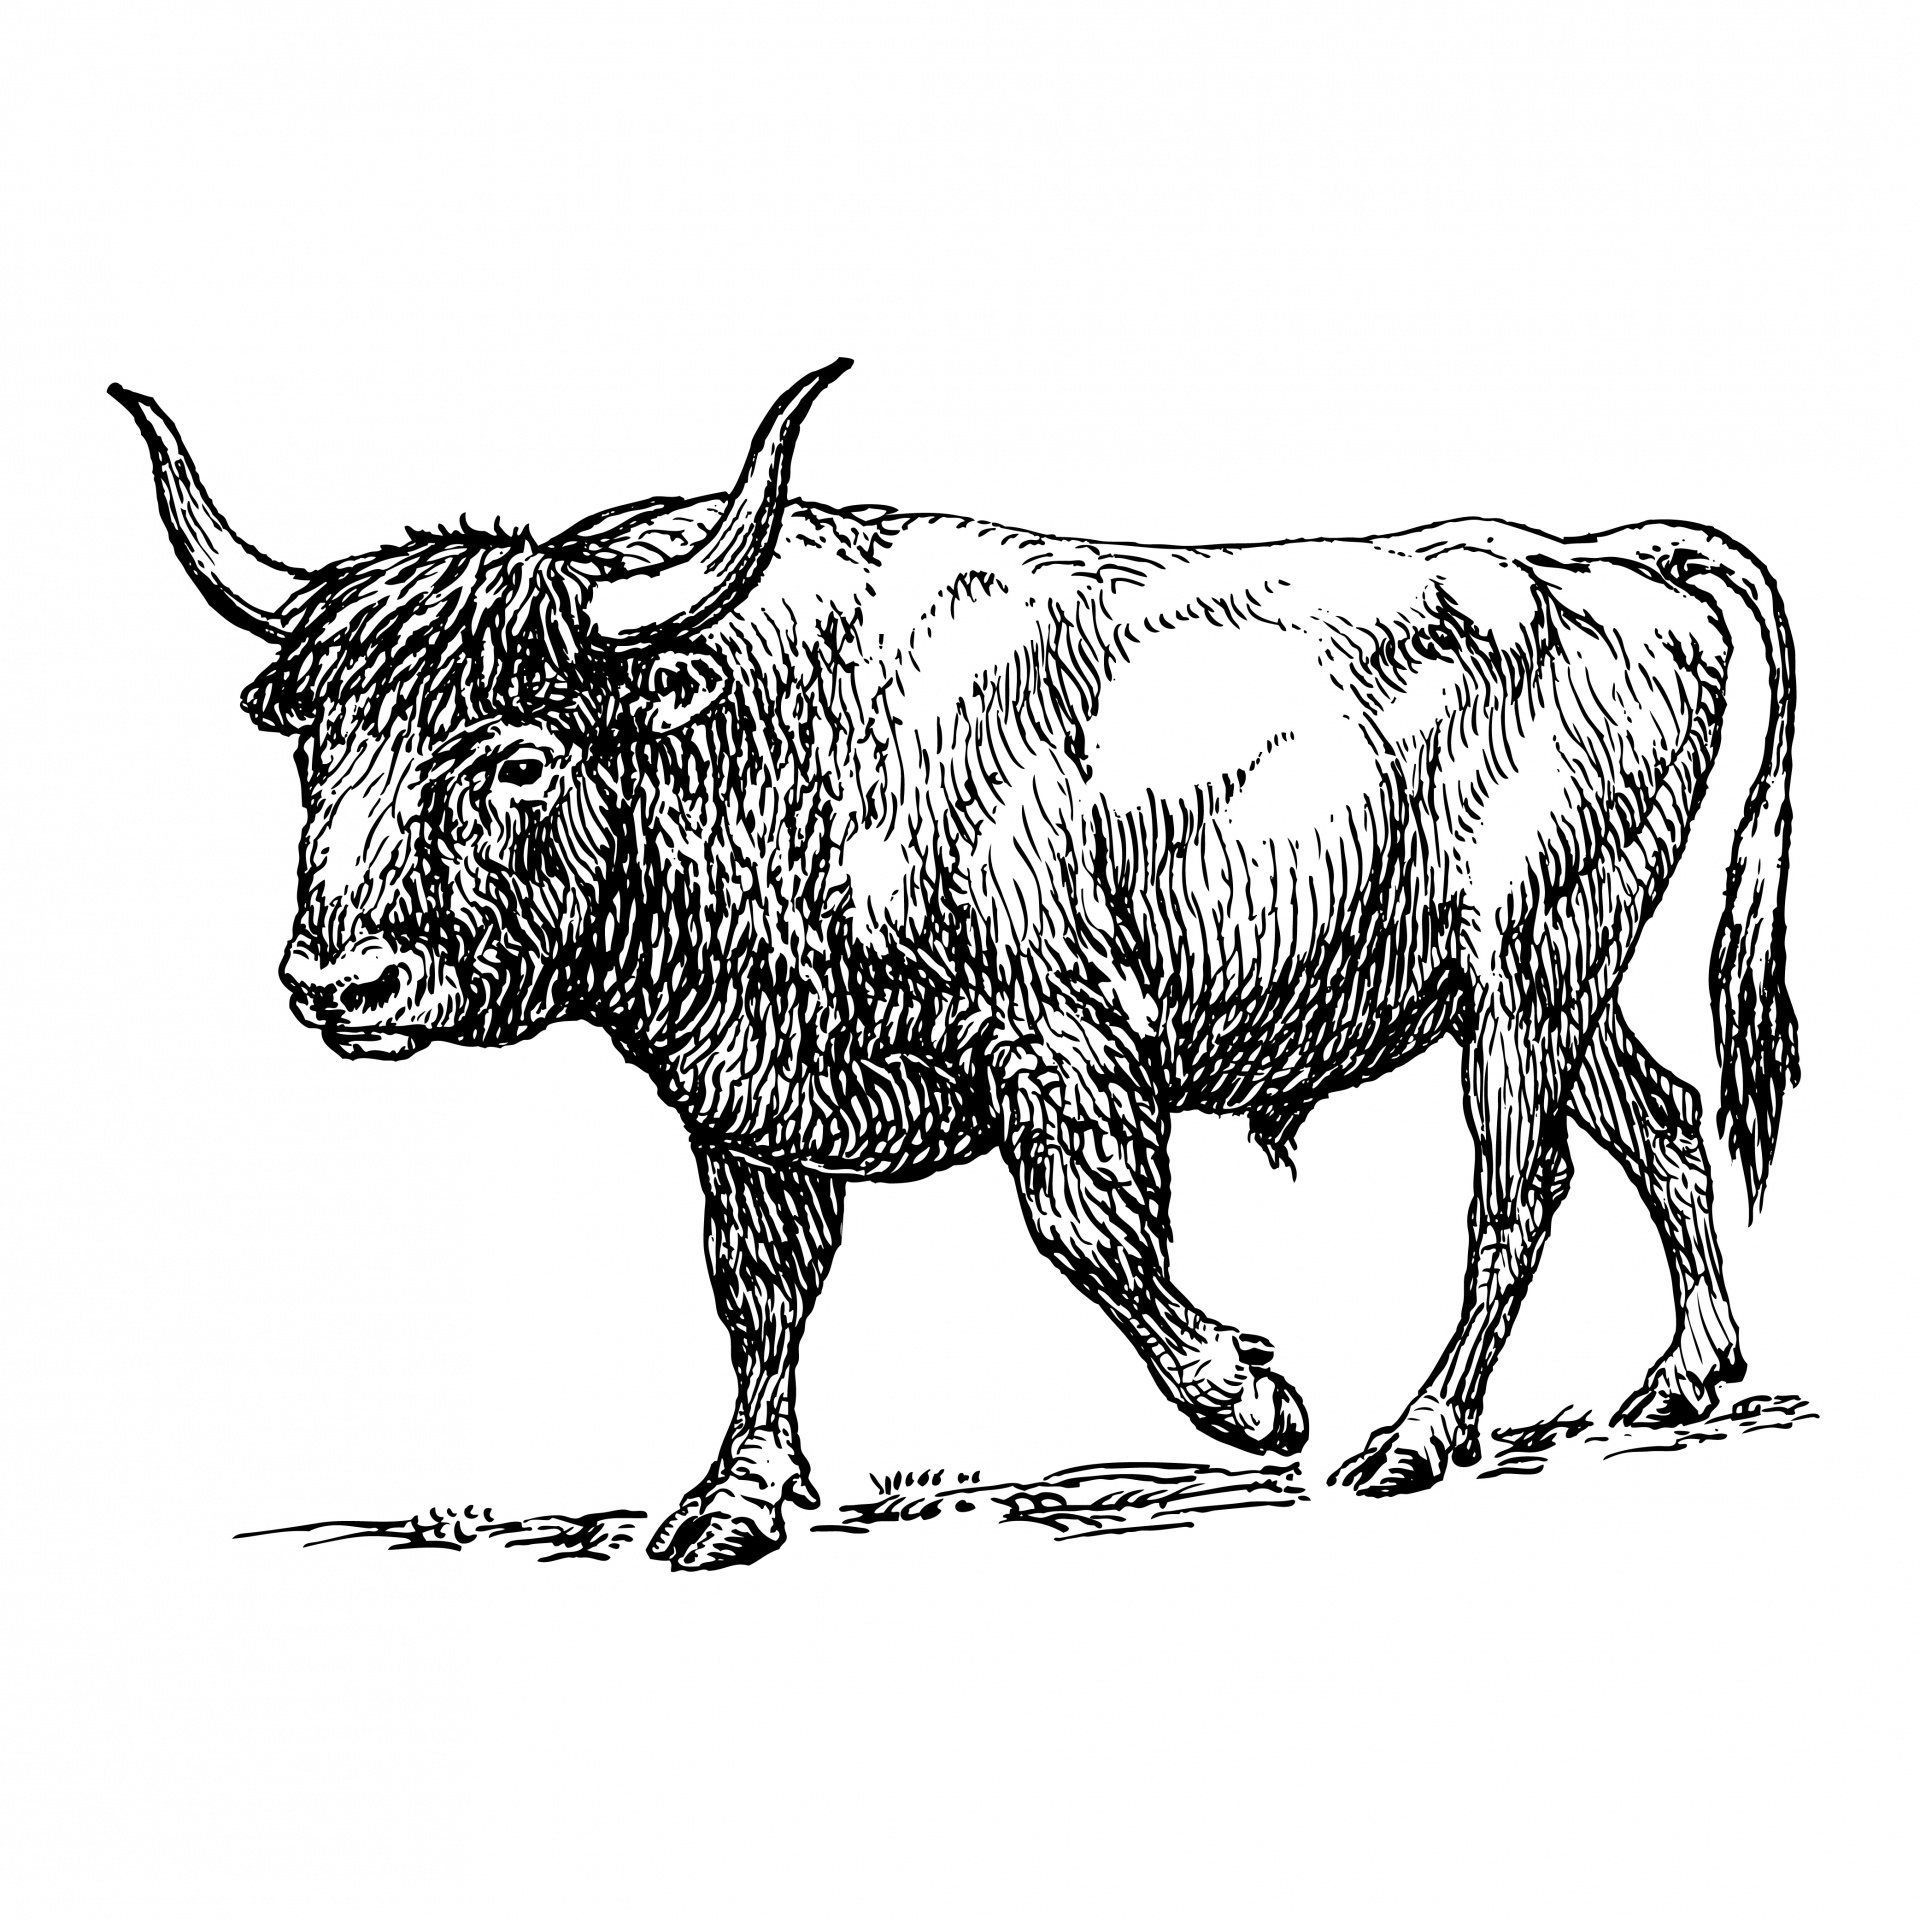 Ox clipart black and white. Illustration free stock photo